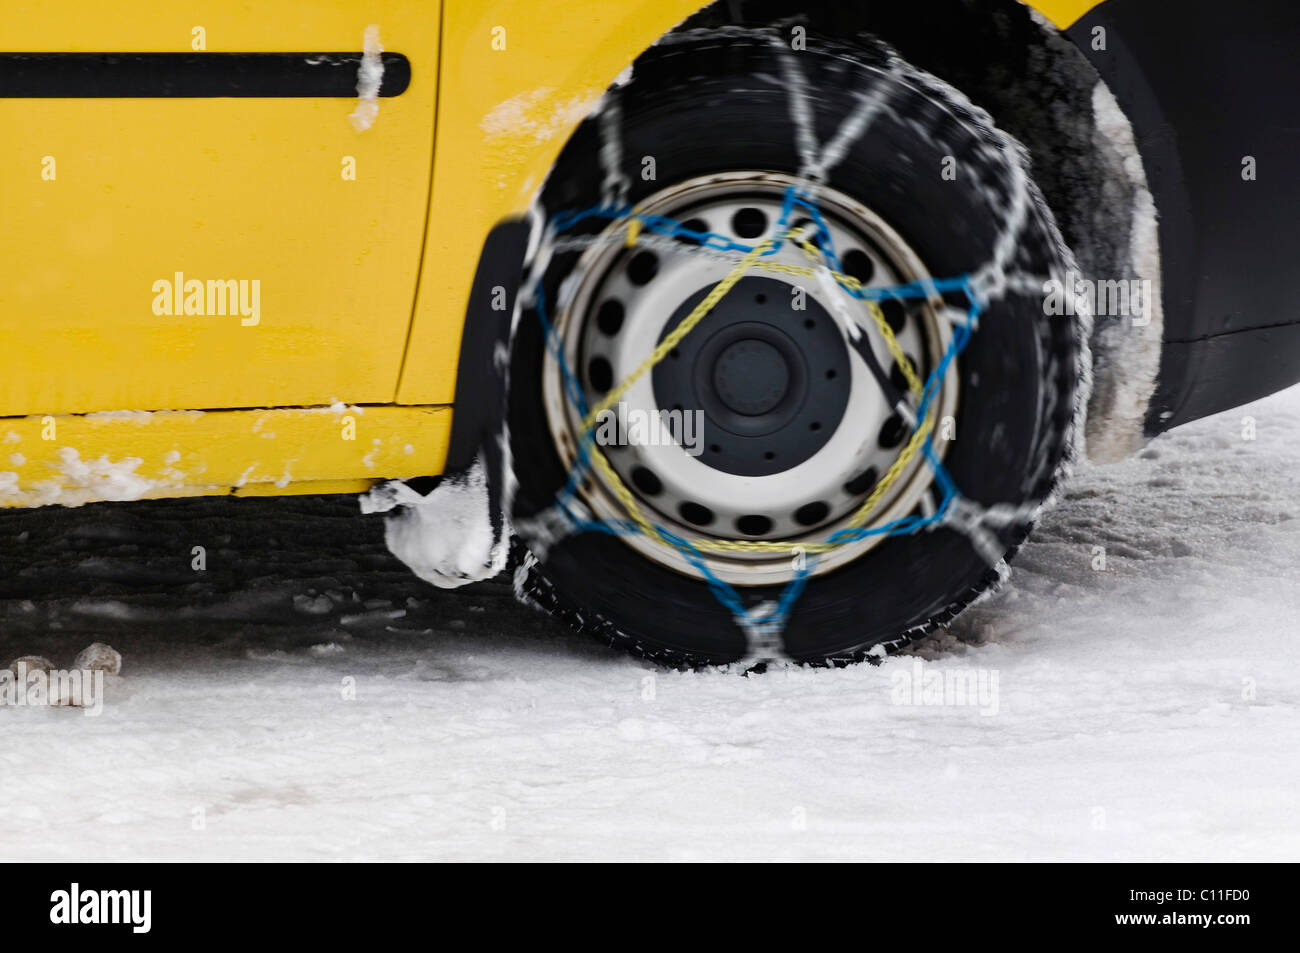 Yellow car driving with snow chains, detail of the rotating front wheel - Stock Image